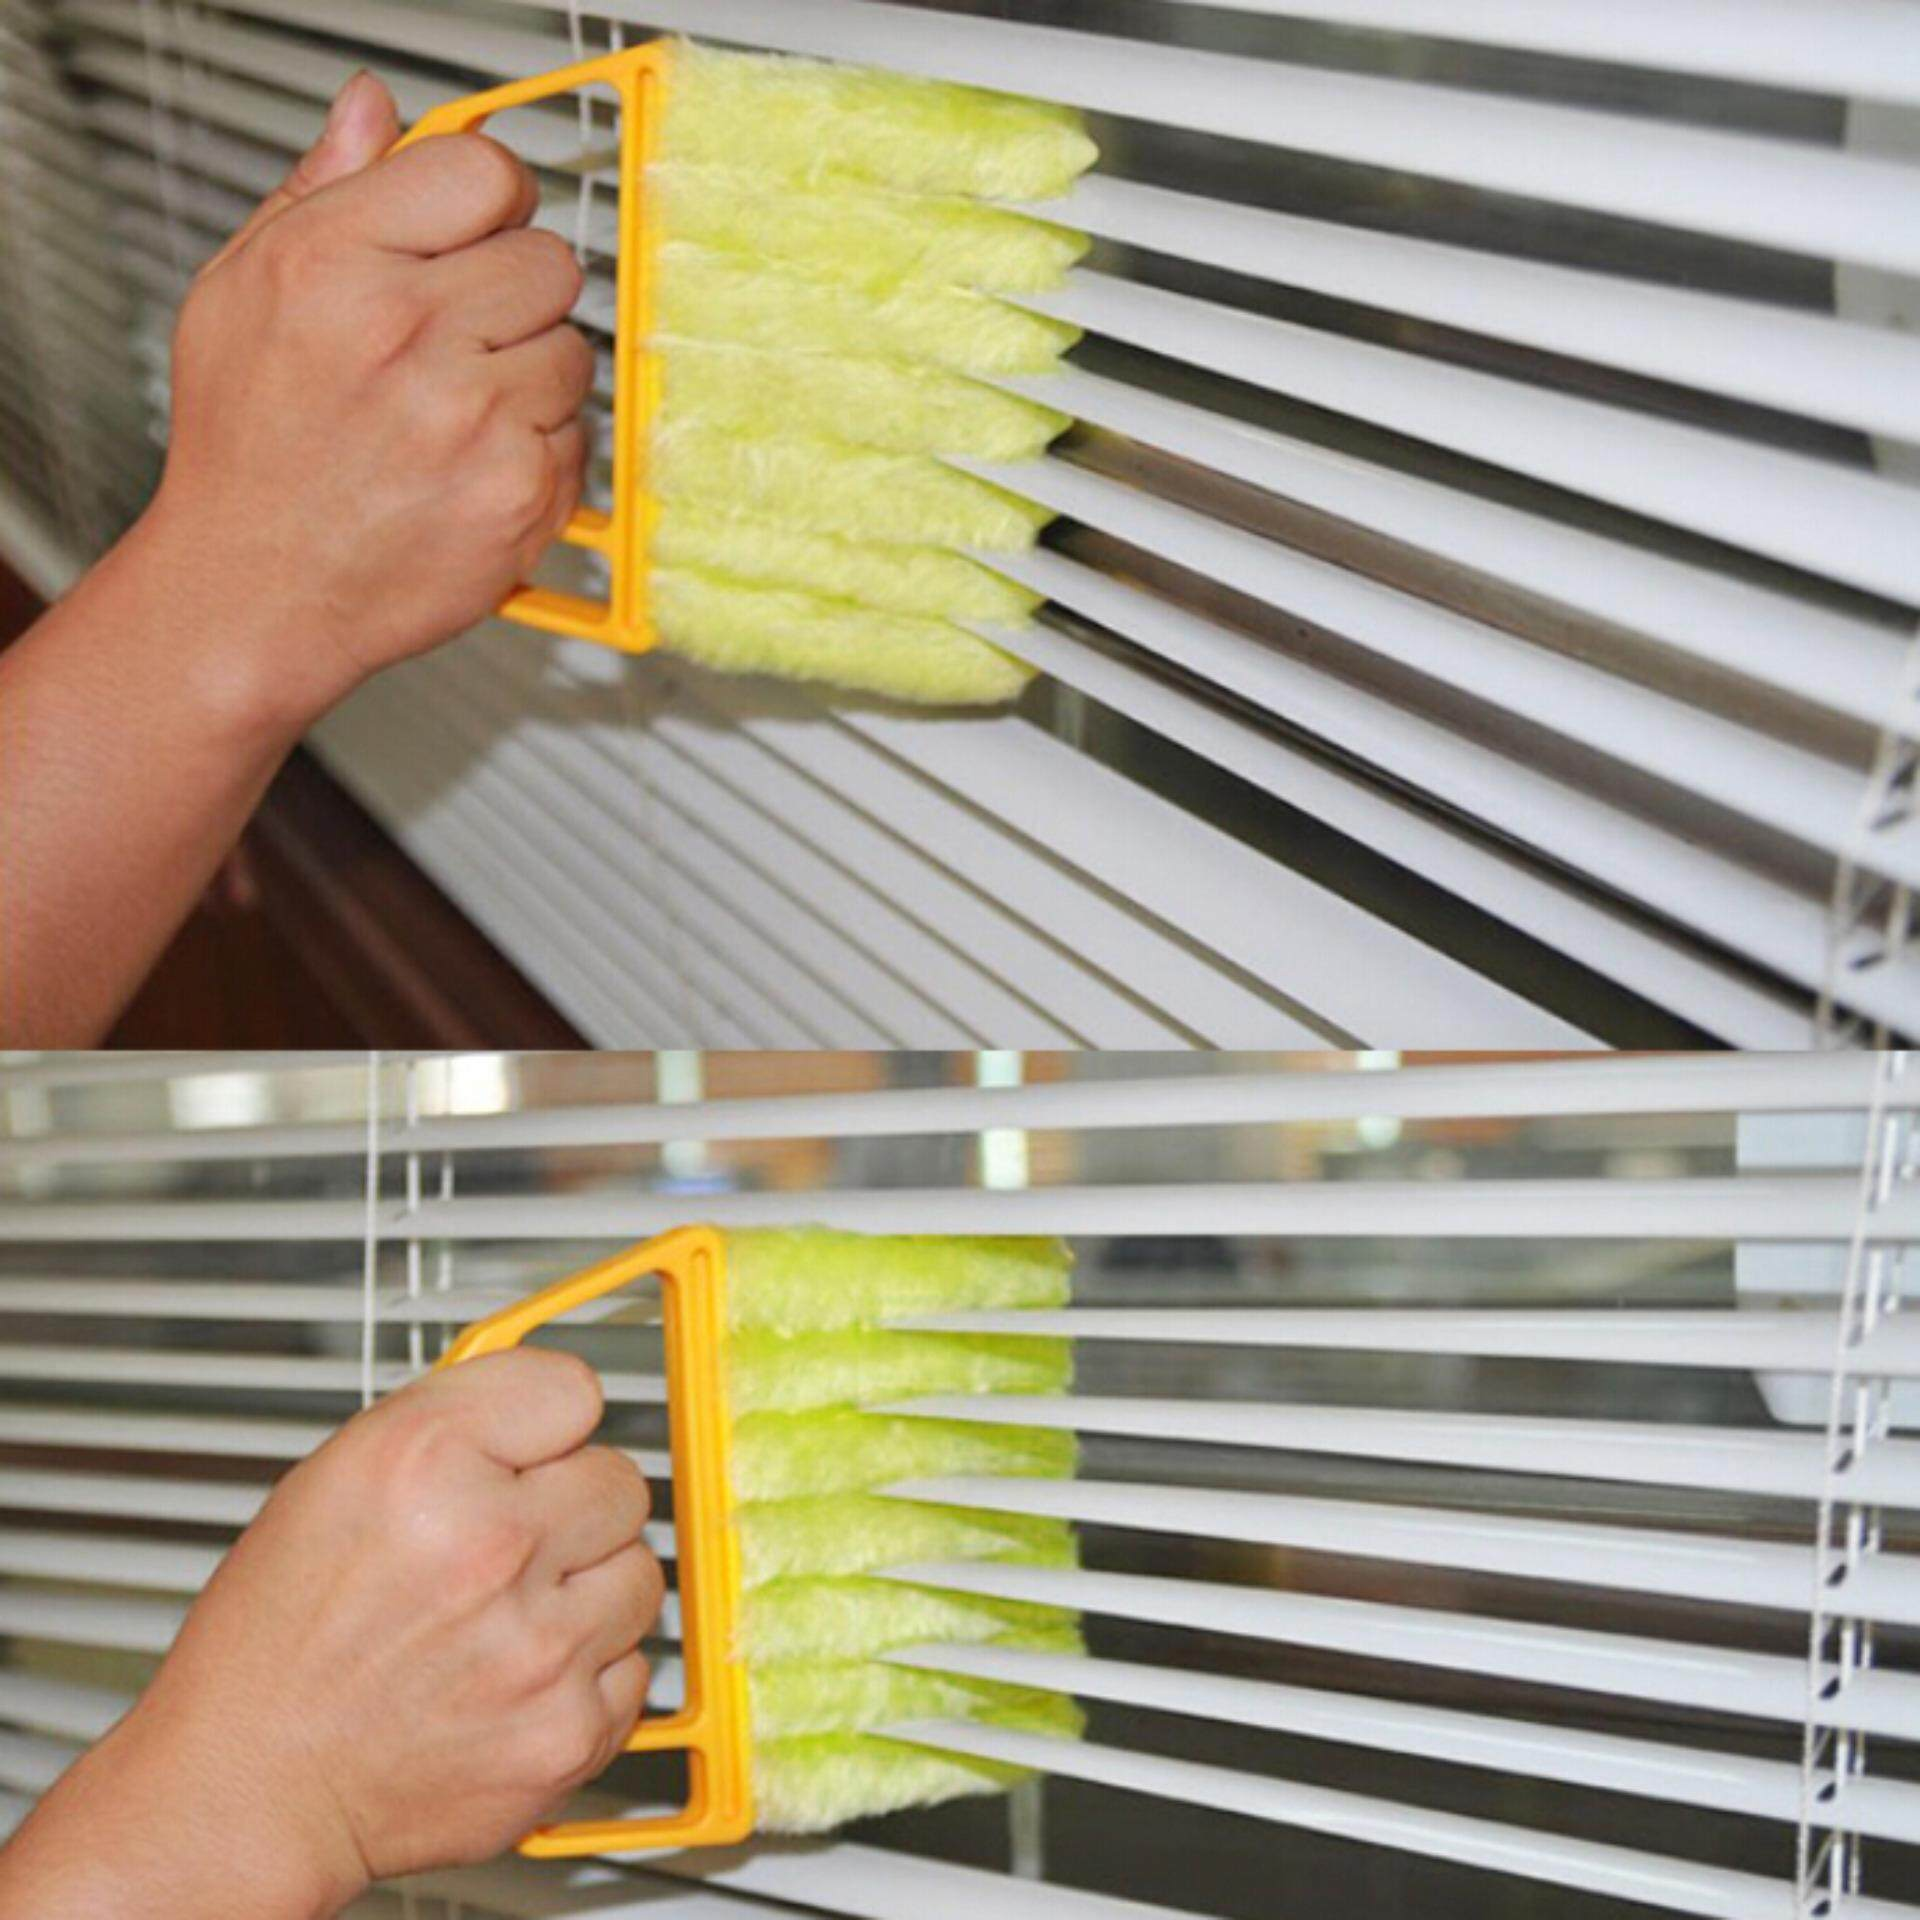 Hot Sale Microfibre Lint Brush Venetian Blind Cleaner Brush Mini Window Air Conditioner Duster Cleaner Dust